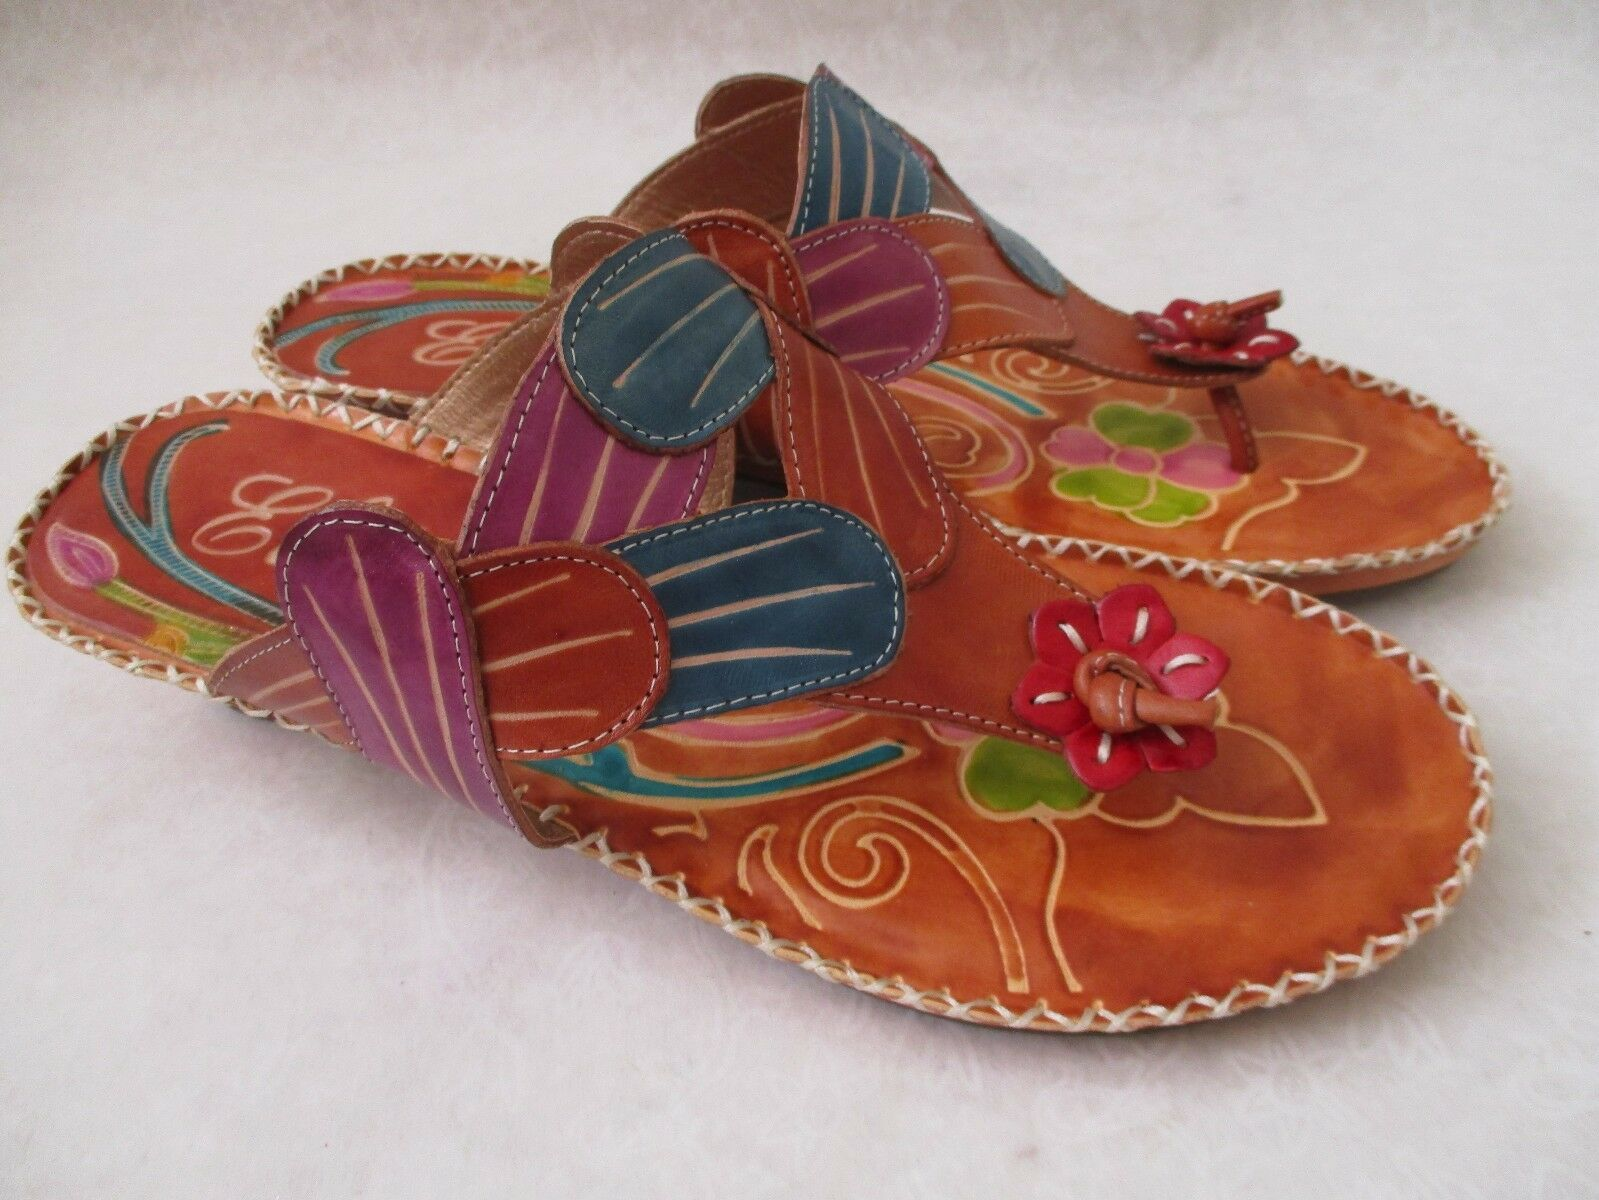 ELITE BY CORKYS BONITA AMBER HAND PAINTED LEATHER SANDALS SIZE 10 - NEW